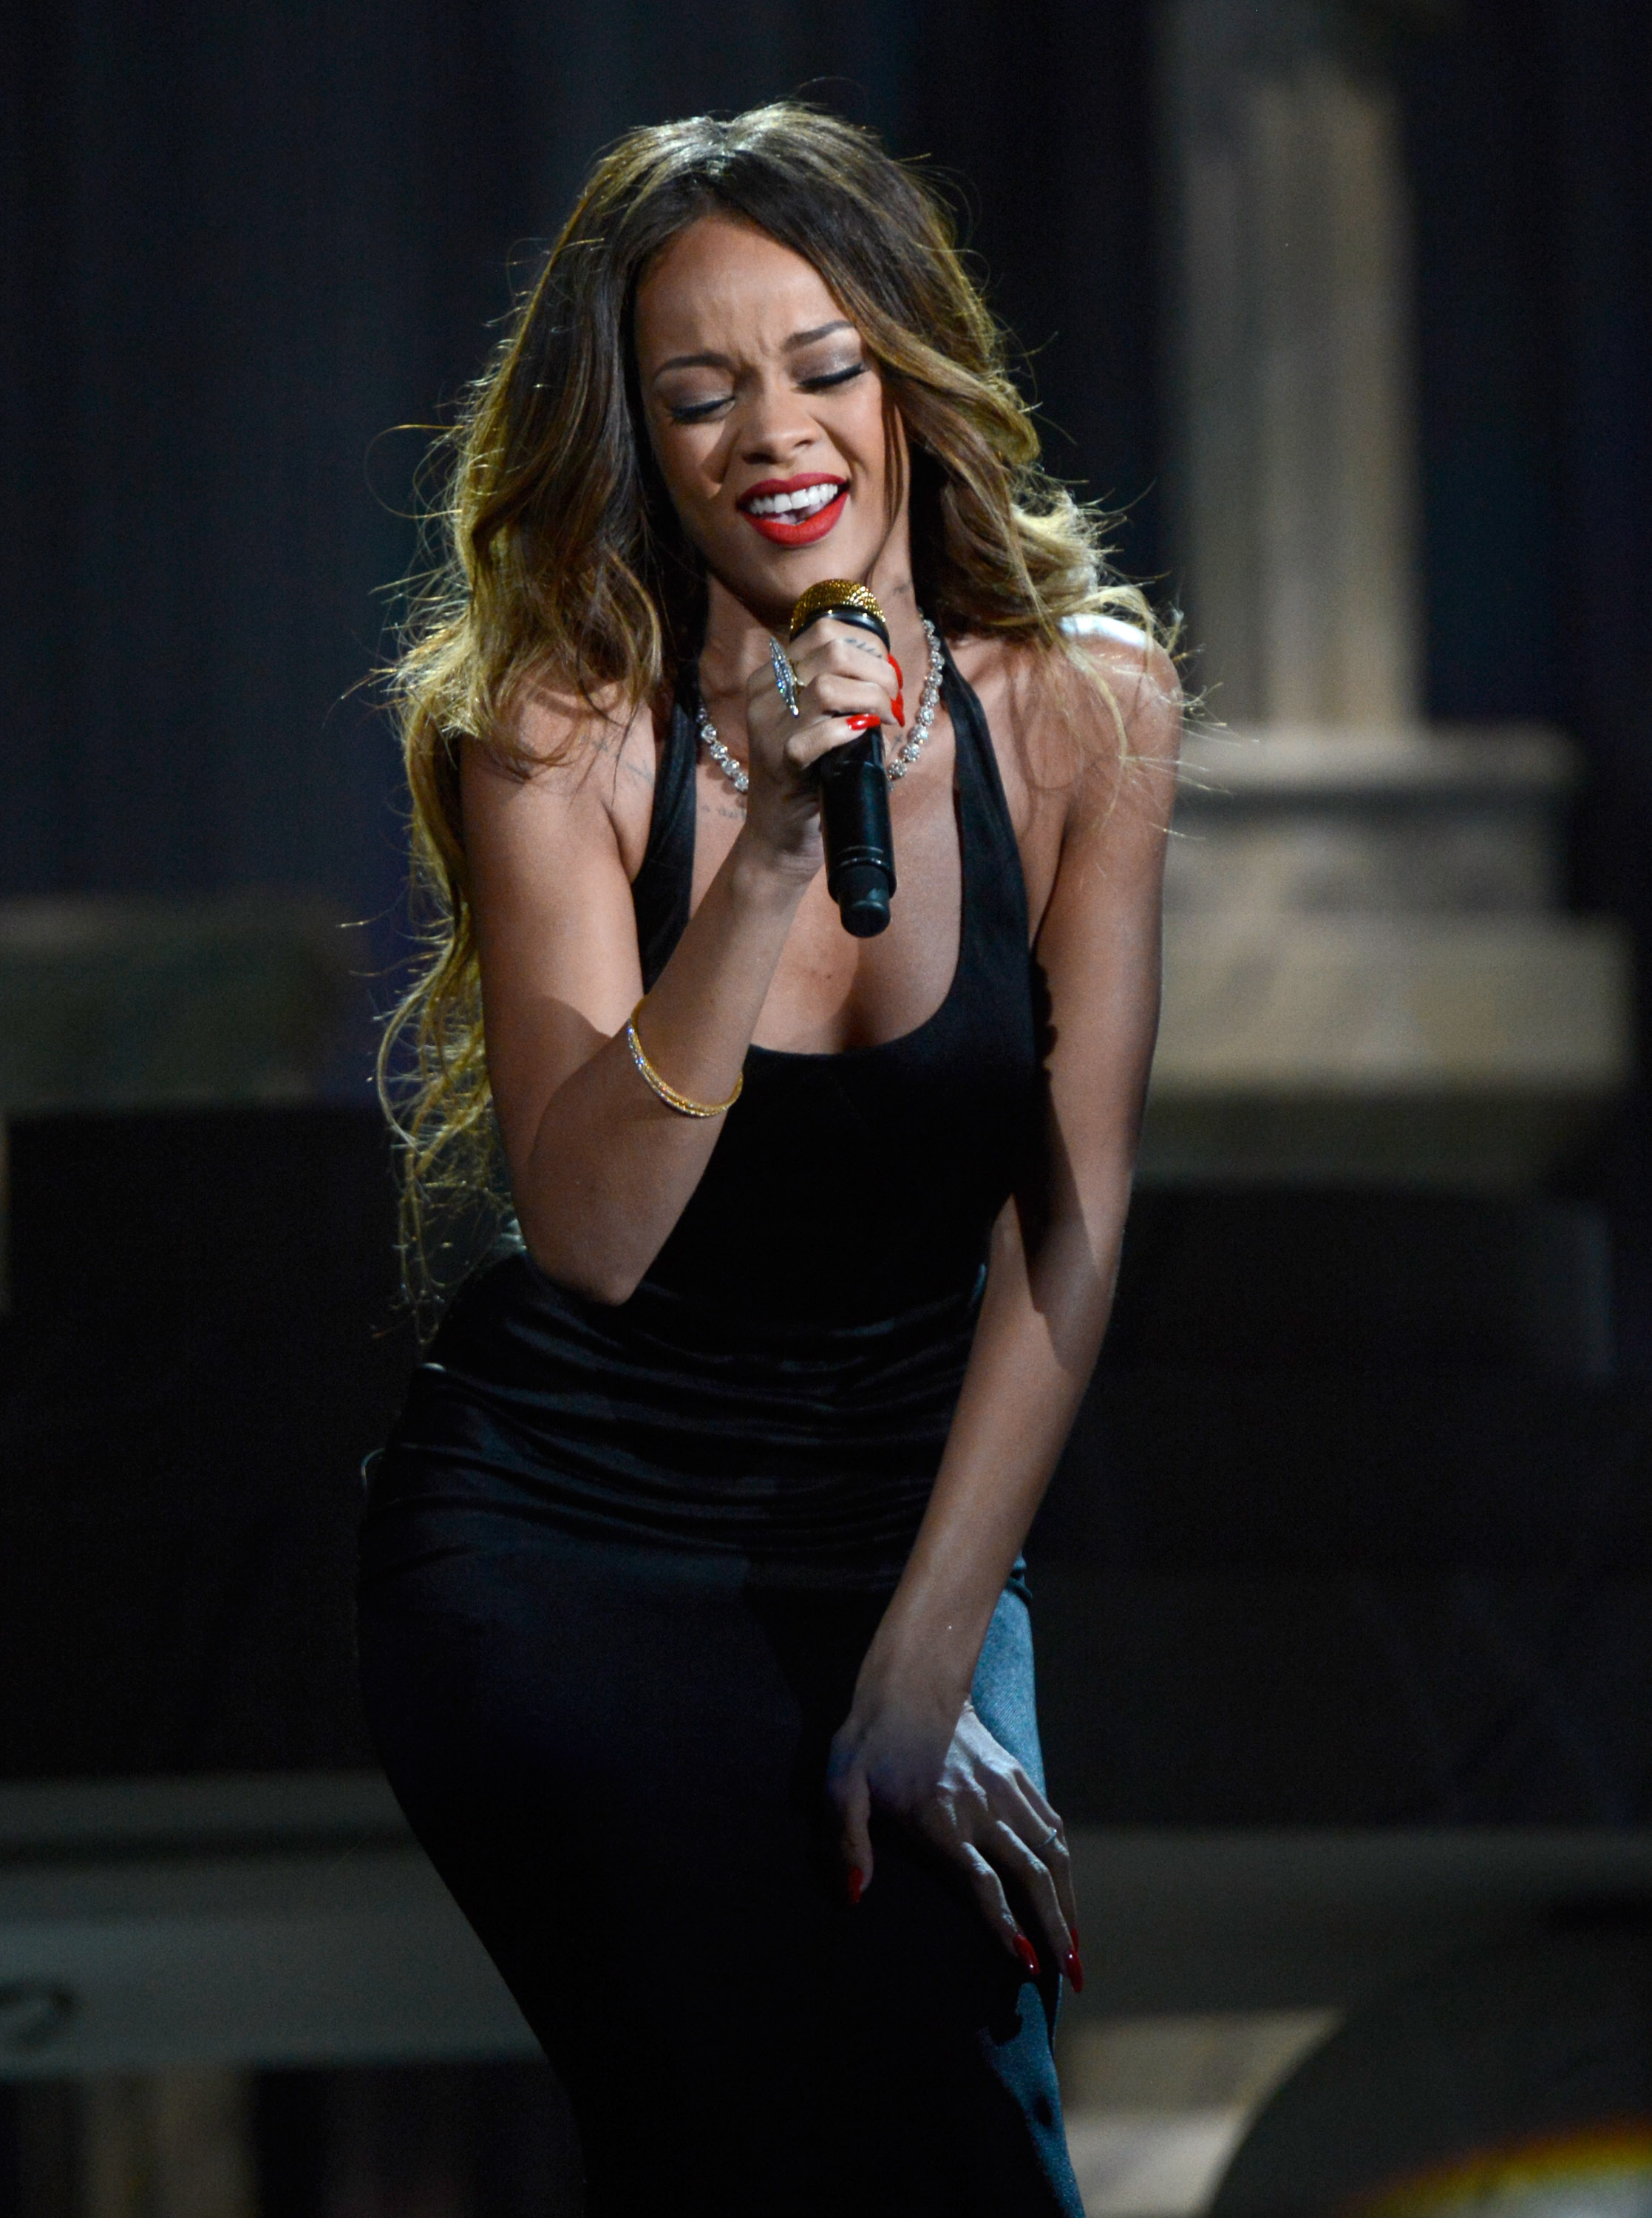 Rihanna wore a simple black dress while she sang at the Grammys in 2013.